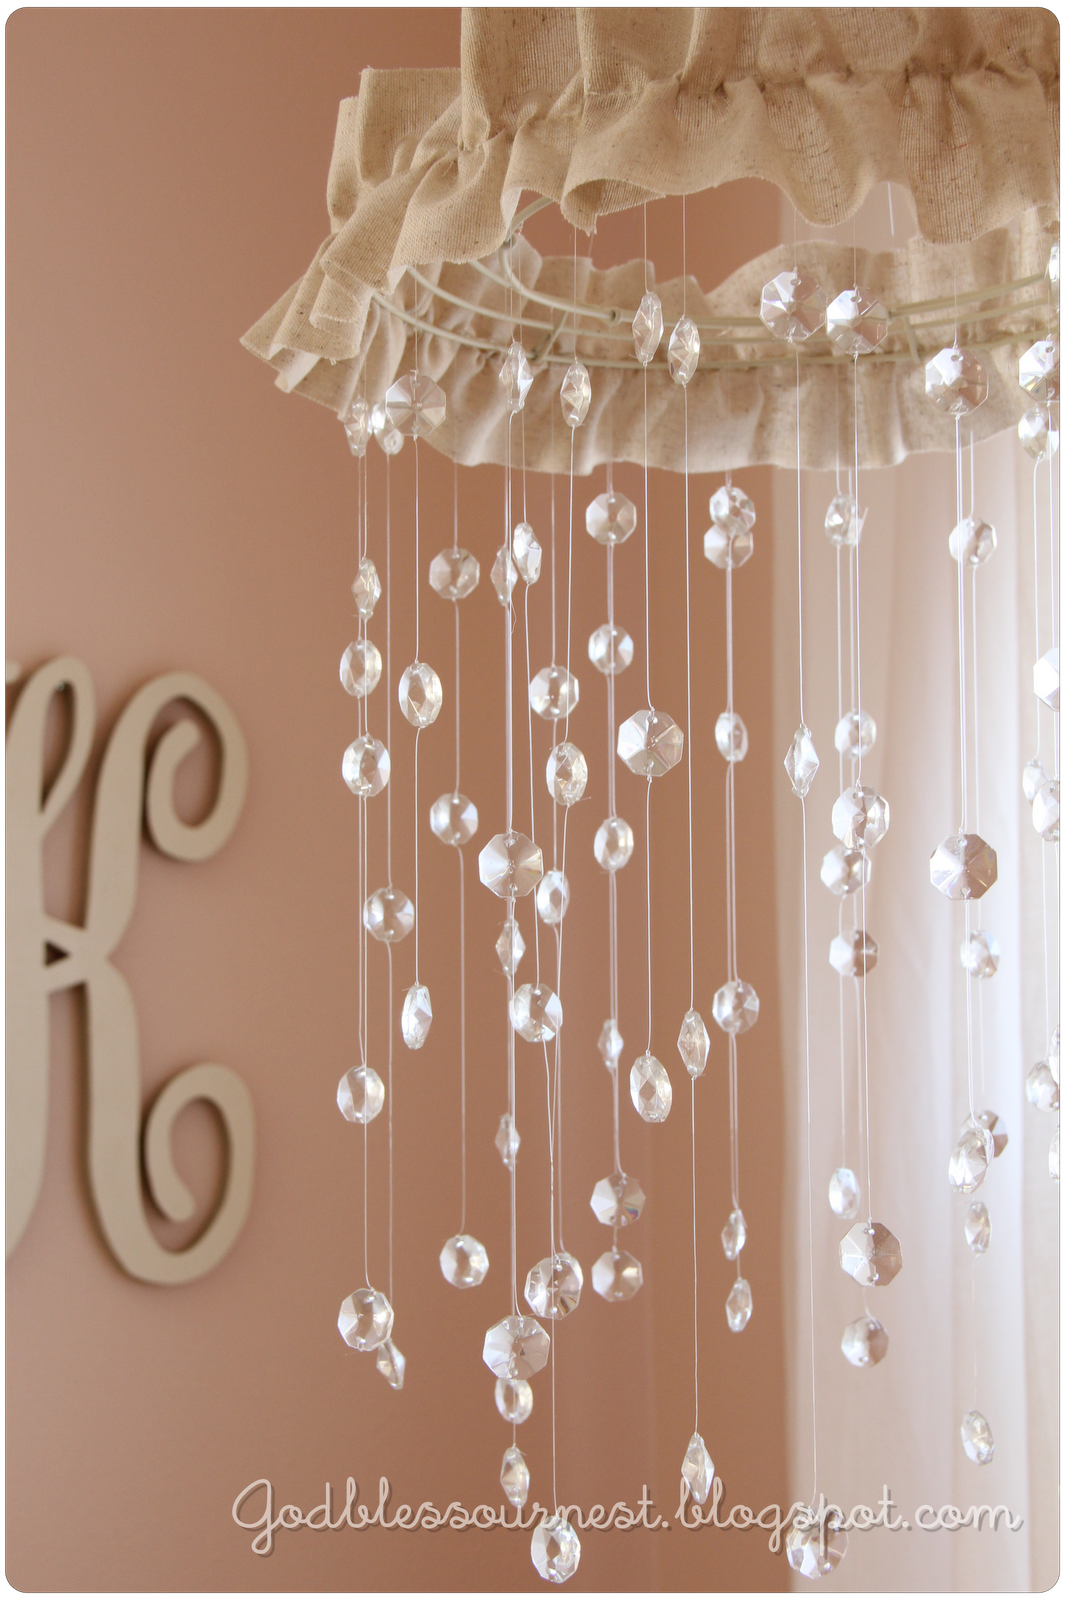 Diy crystal mobile pretty for even a big girls room baby items diy crystal mobile pretty for even a big girls room aloadofball Image collections